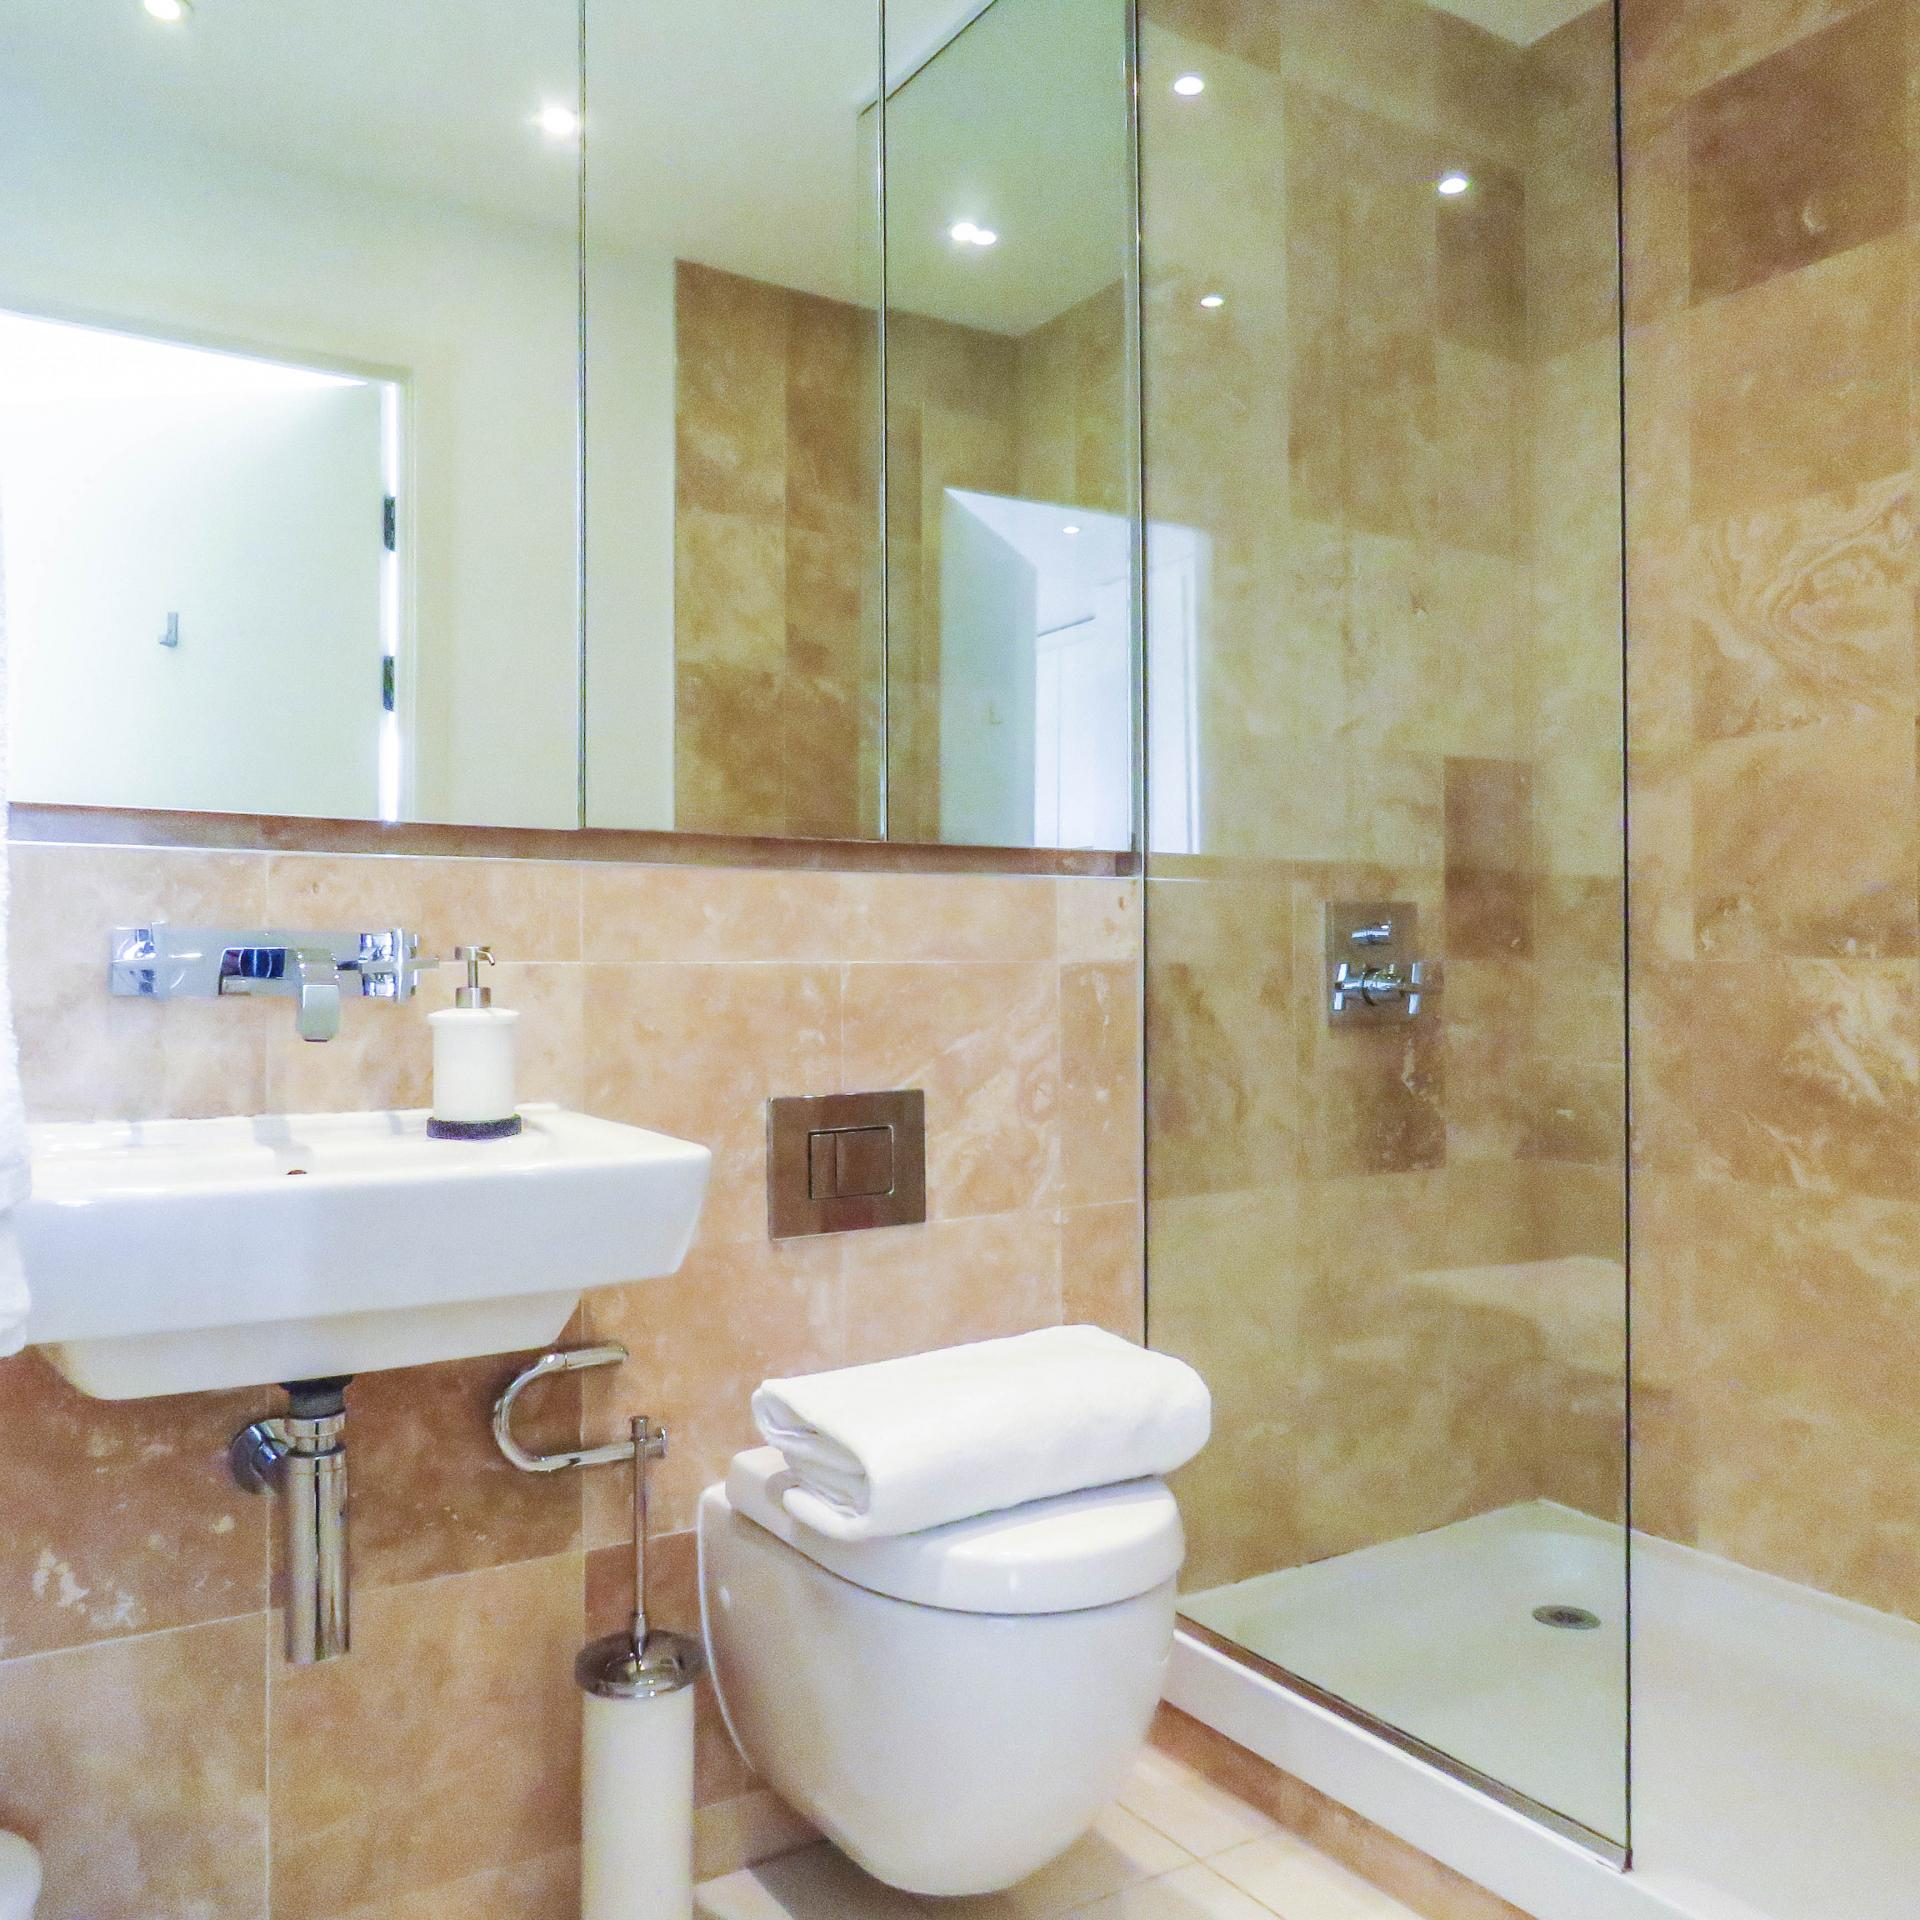 Shower at The Cube Serviced Apartments